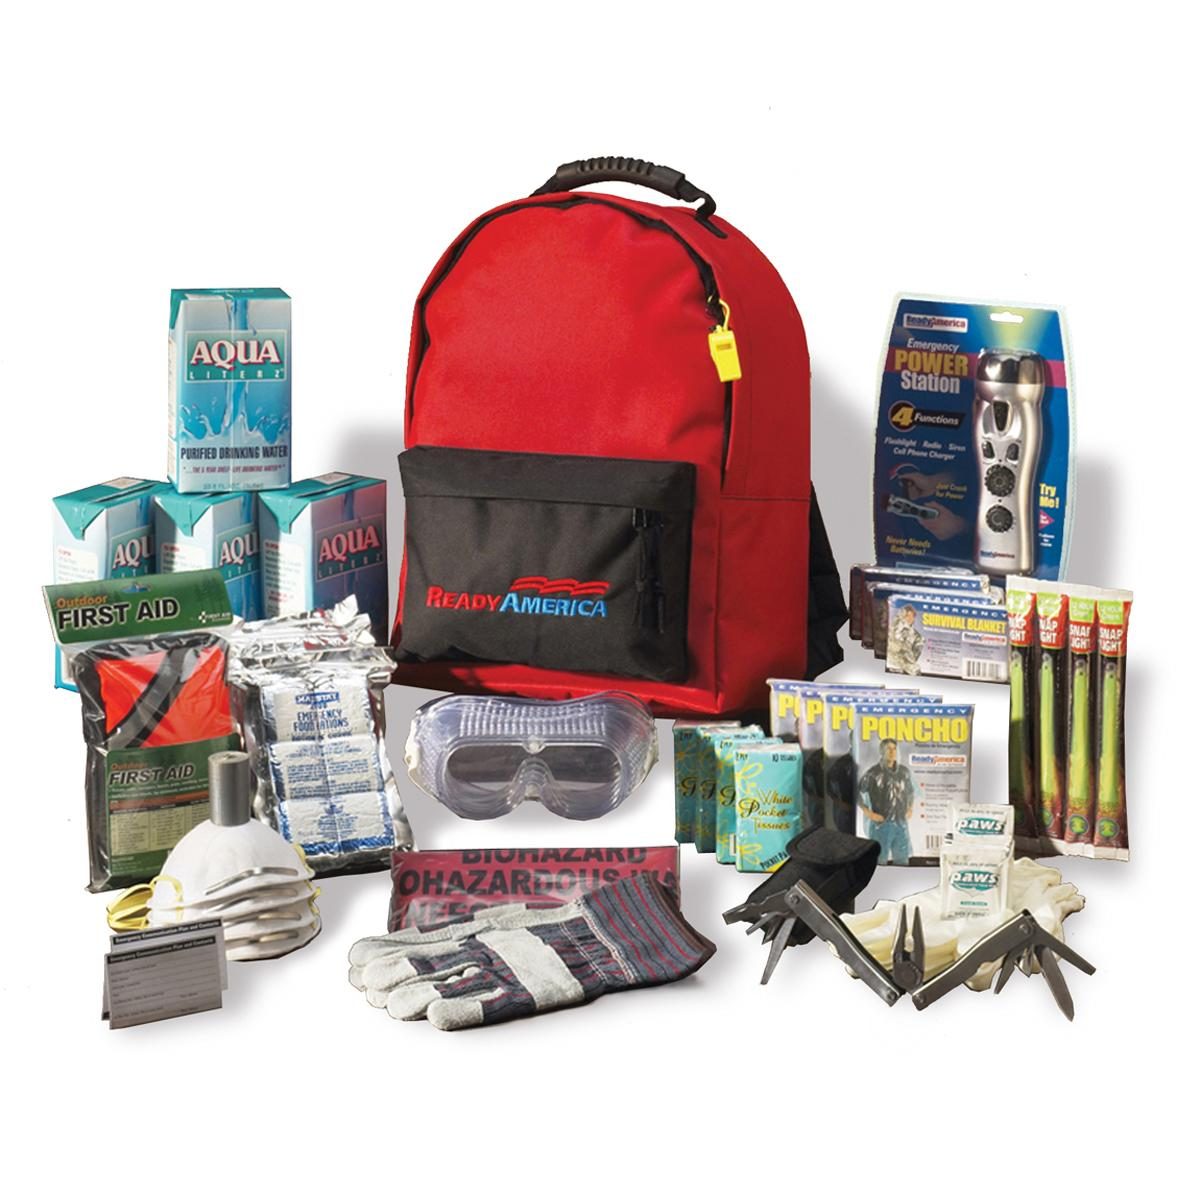 ready america 70385 deluxe emergency kit 4 person backpack residential solar power in durban south africa